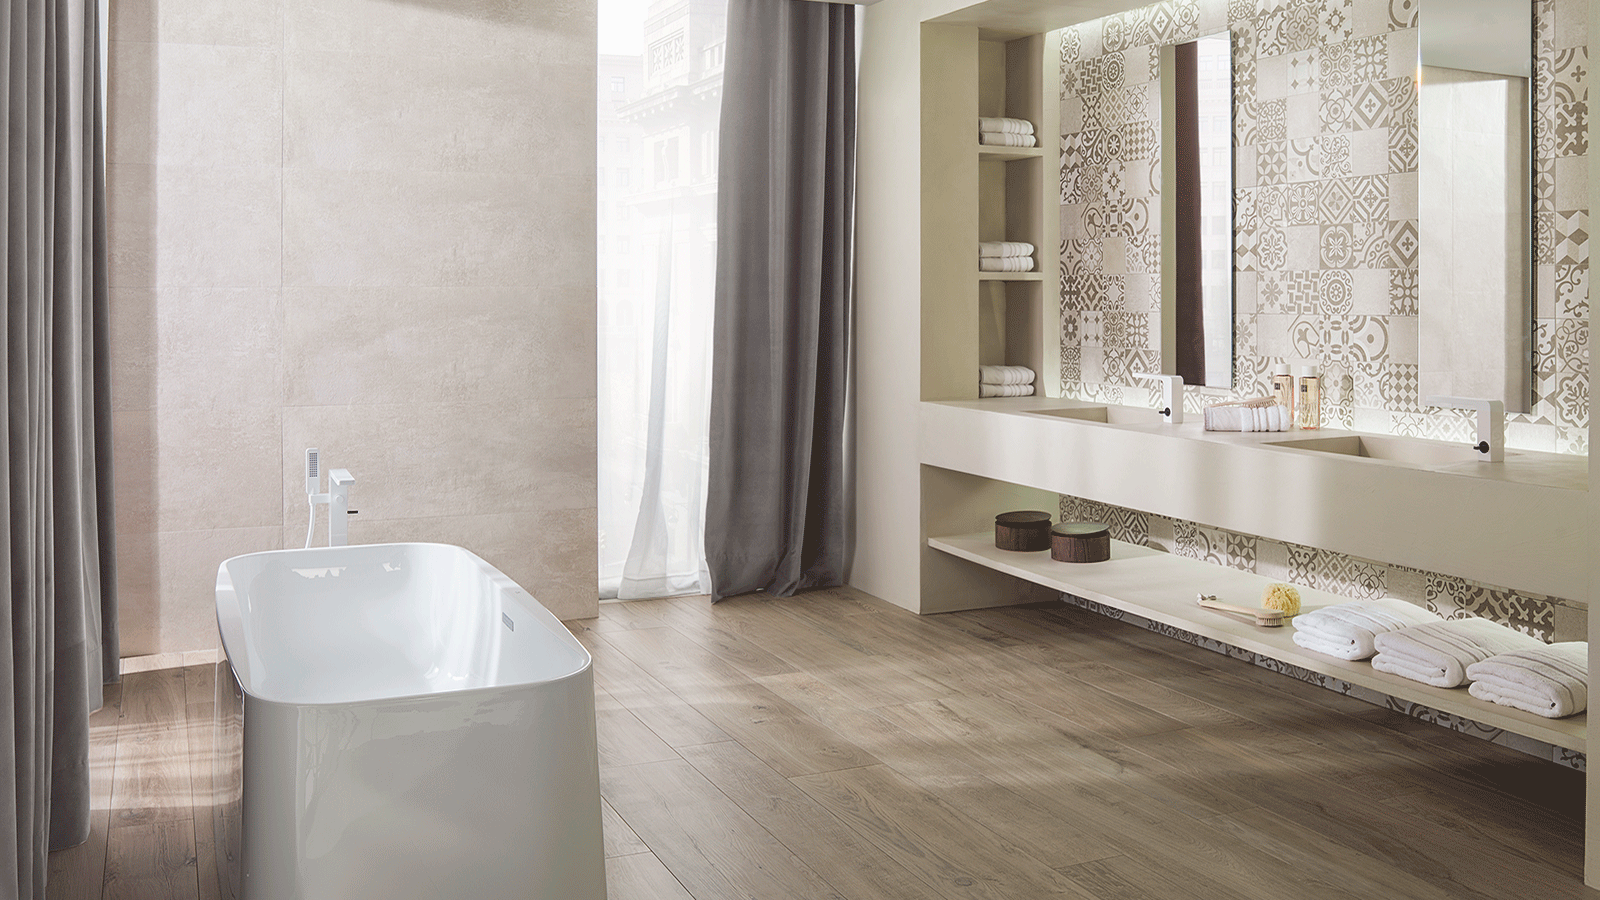 Porcelanosa brings the charm of hydraulic tiles back